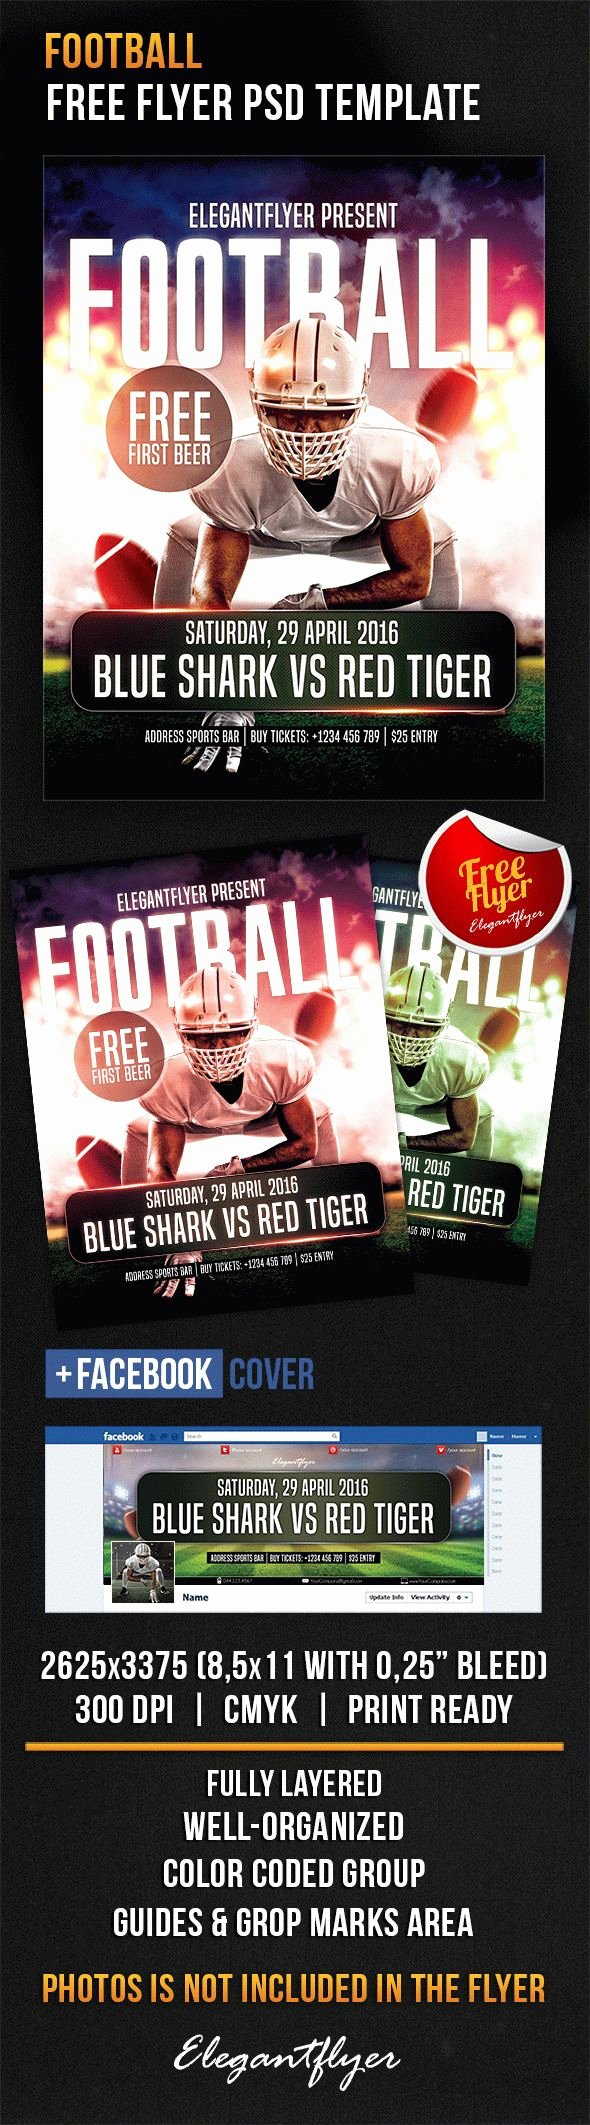 Football – Free Flyer Psd Template – by Elegantflyer